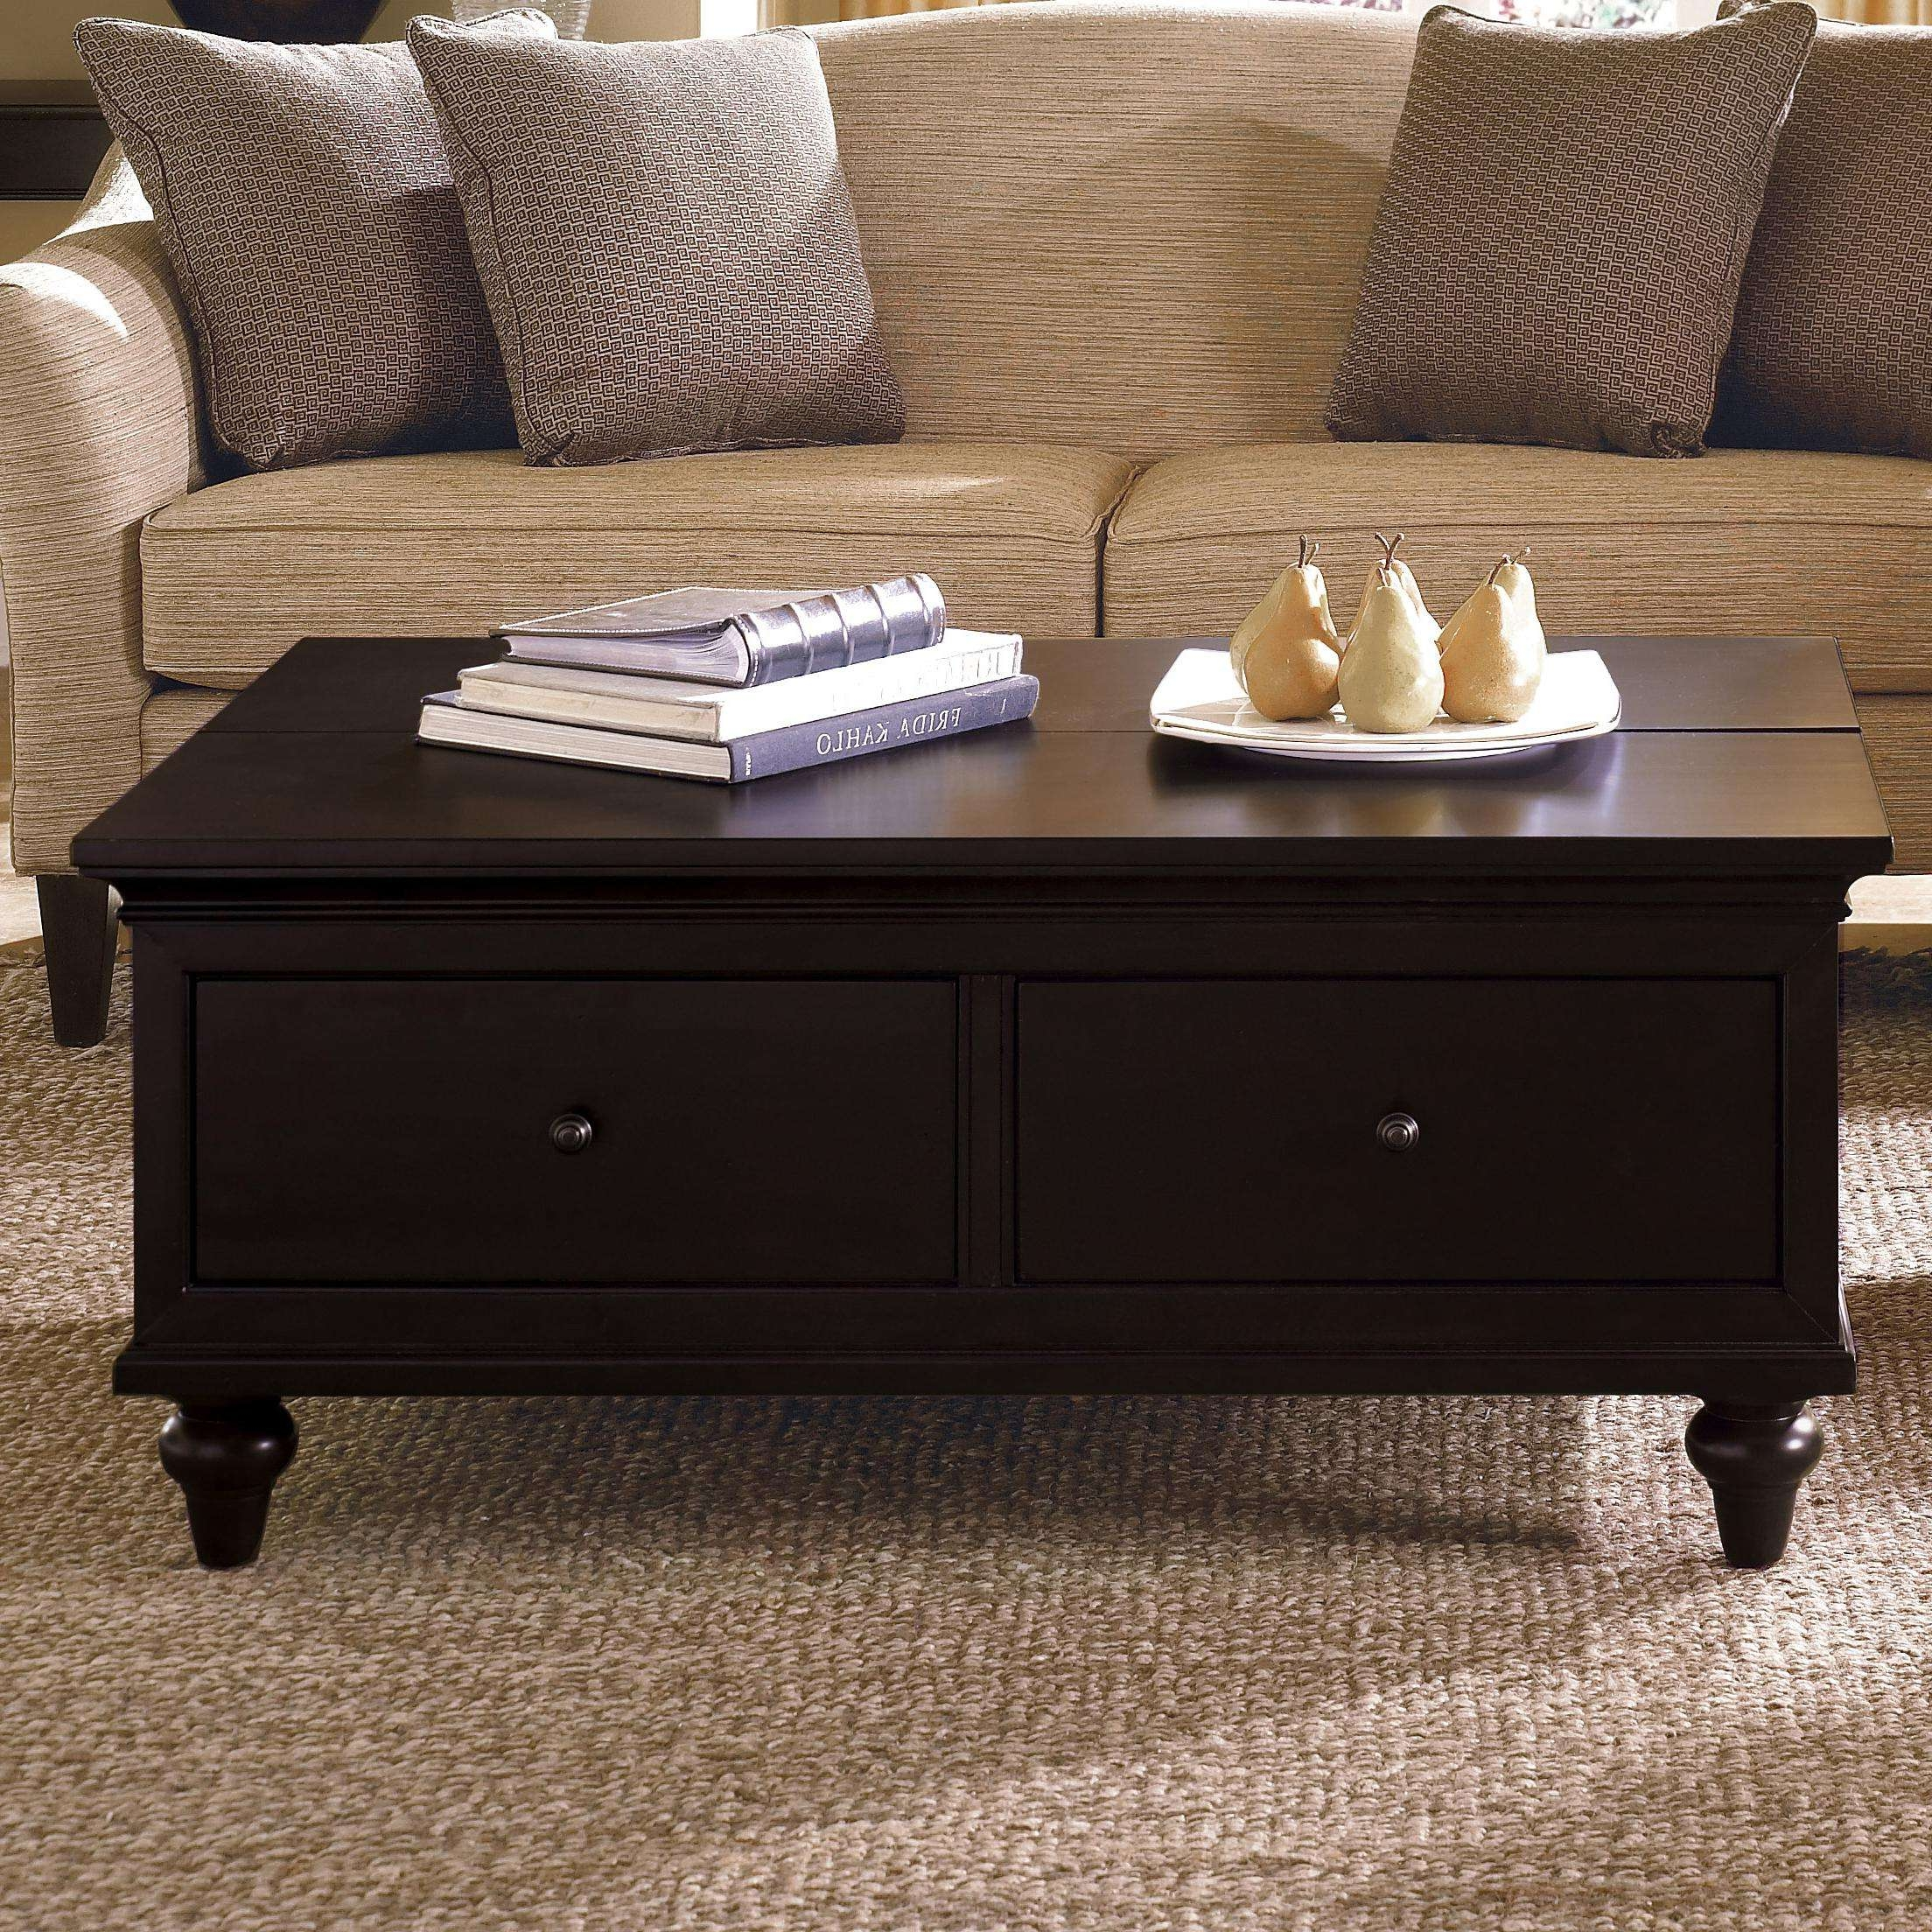 Coffee Table, Coffee Table Lift Up Design With Drawers And Added Throughout Preferred Cream Coffee Tables With Drawers (View 5 of 20)